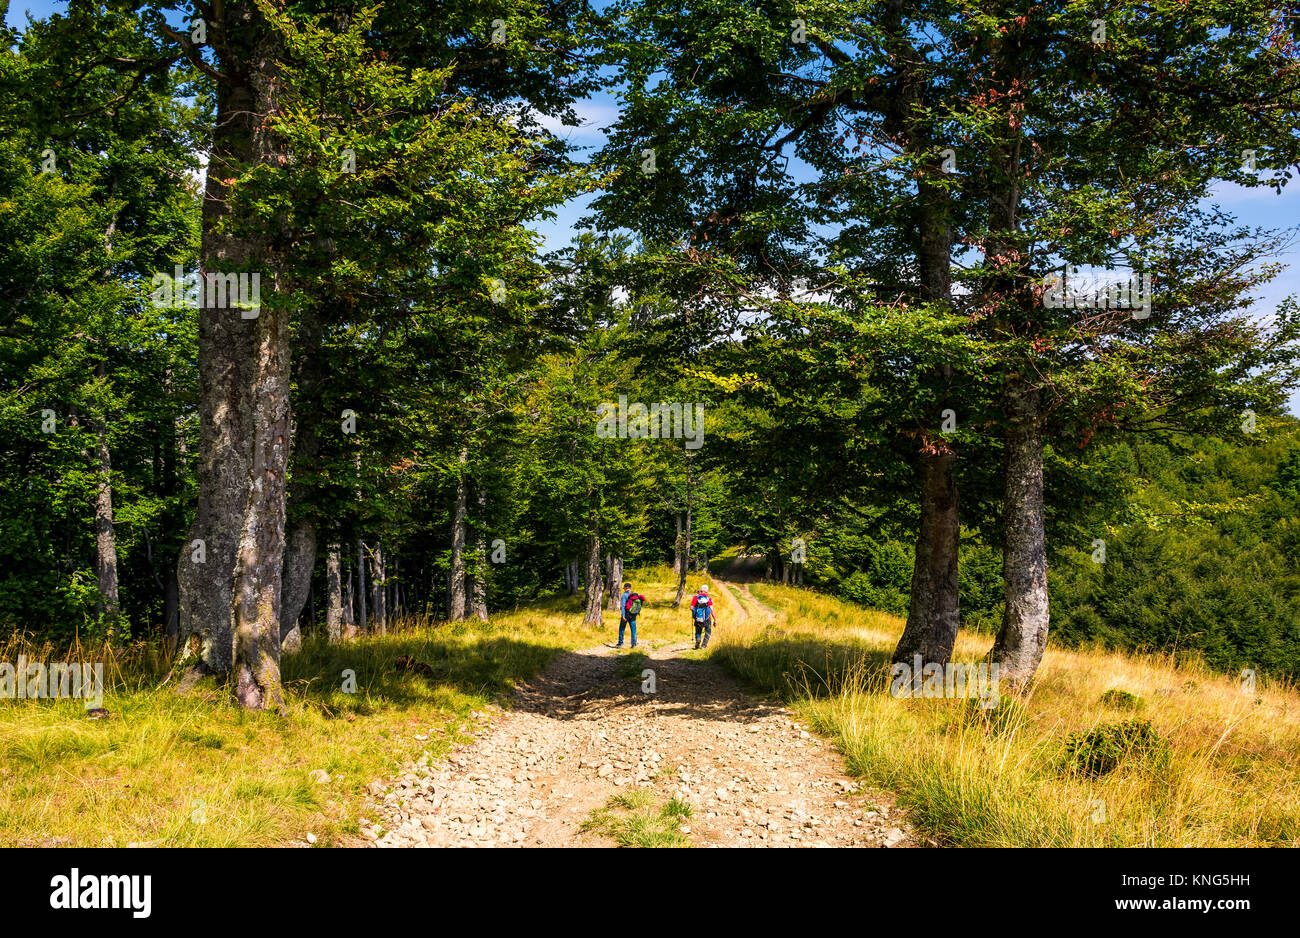 tourists on a dirt road through Primeval Beech Forests of the Carpathians. gorgeous nature scenery in summer - Stock Image